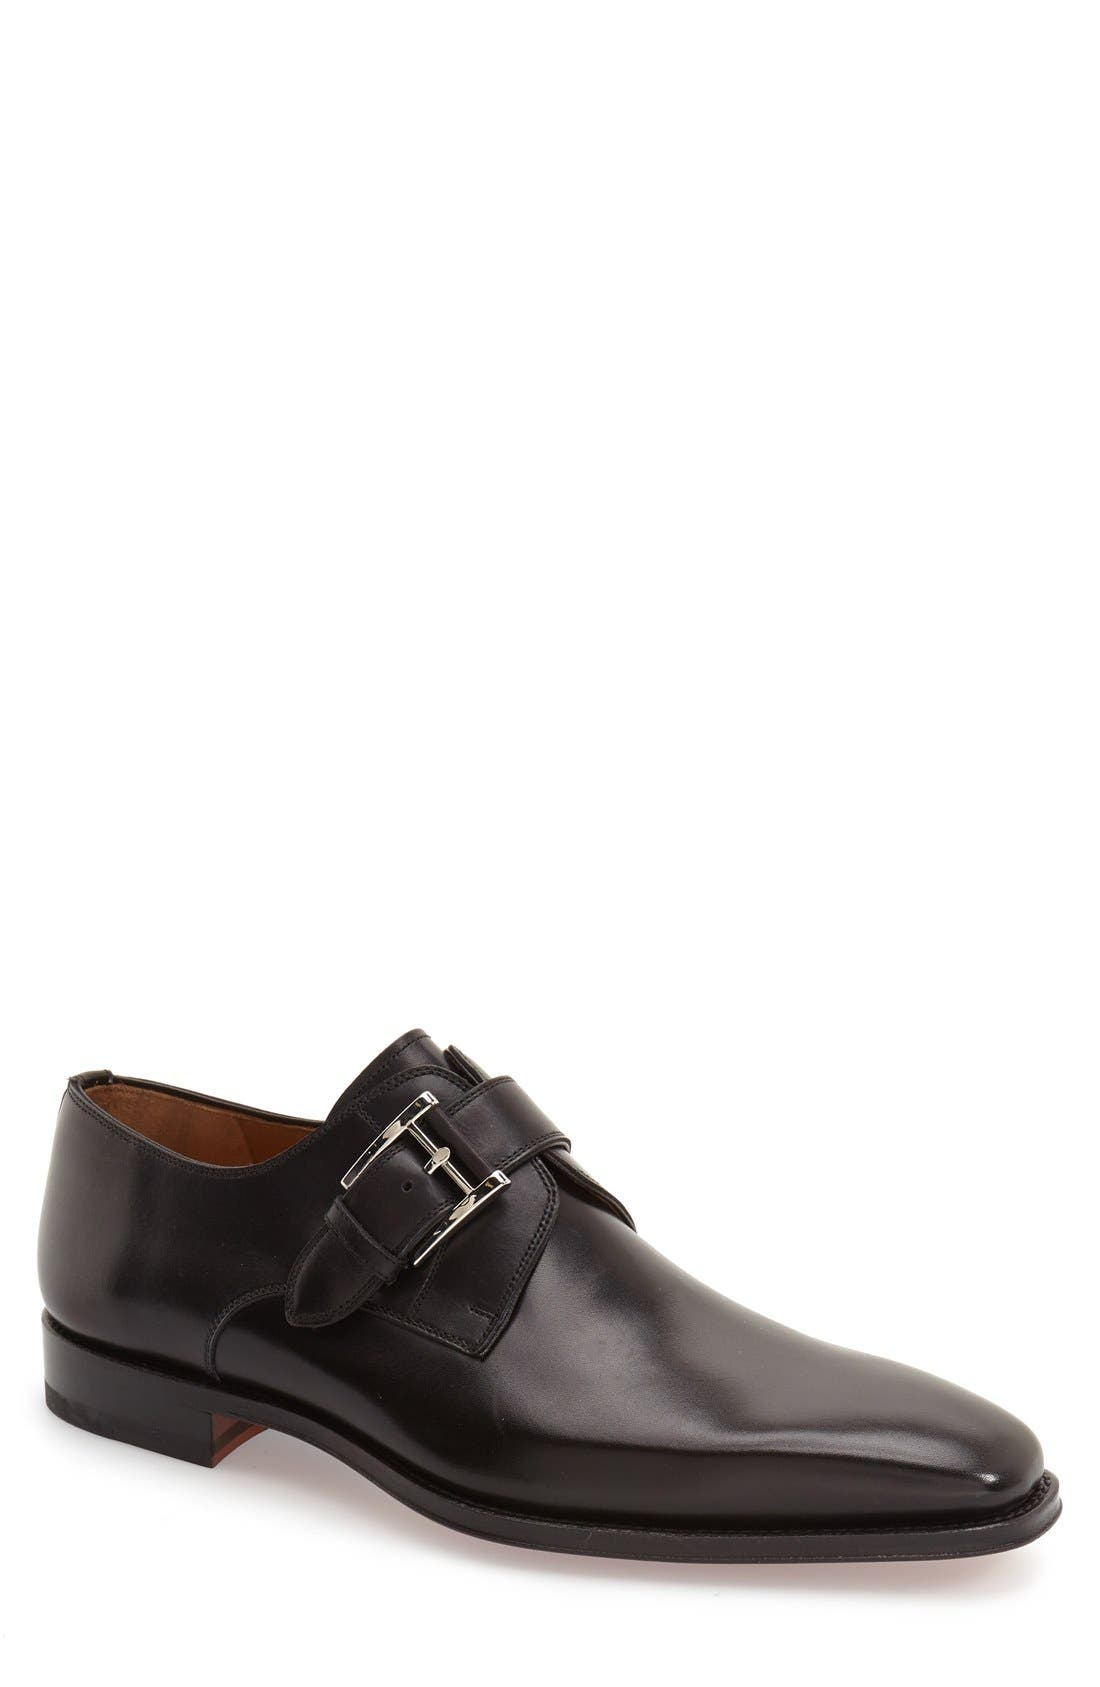 kenneth cole reaction shoes up in smoke cigars stores in brookly